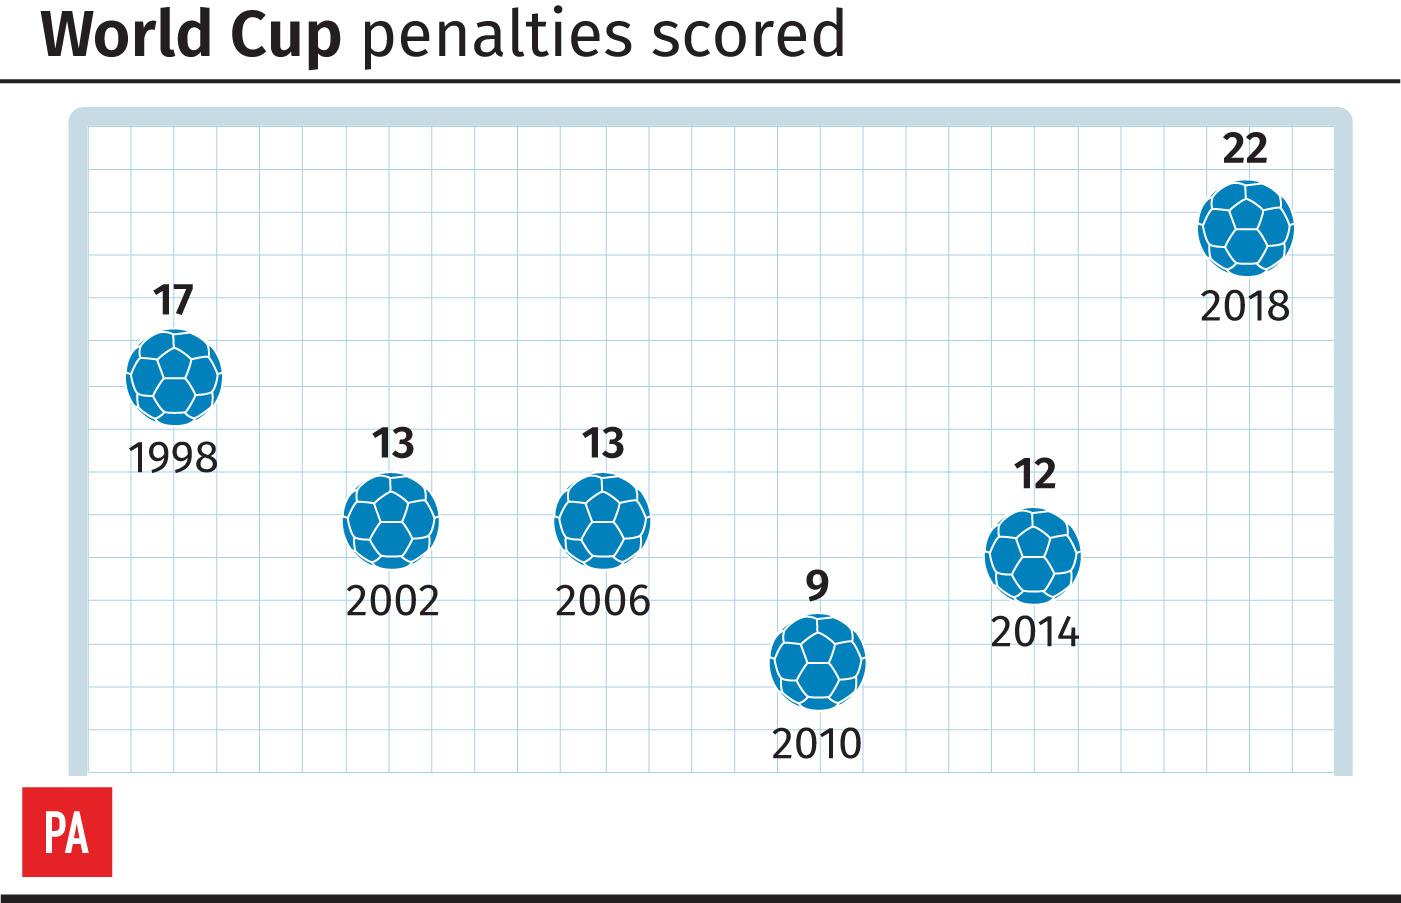 Penalties scored at each World Cup since 1998